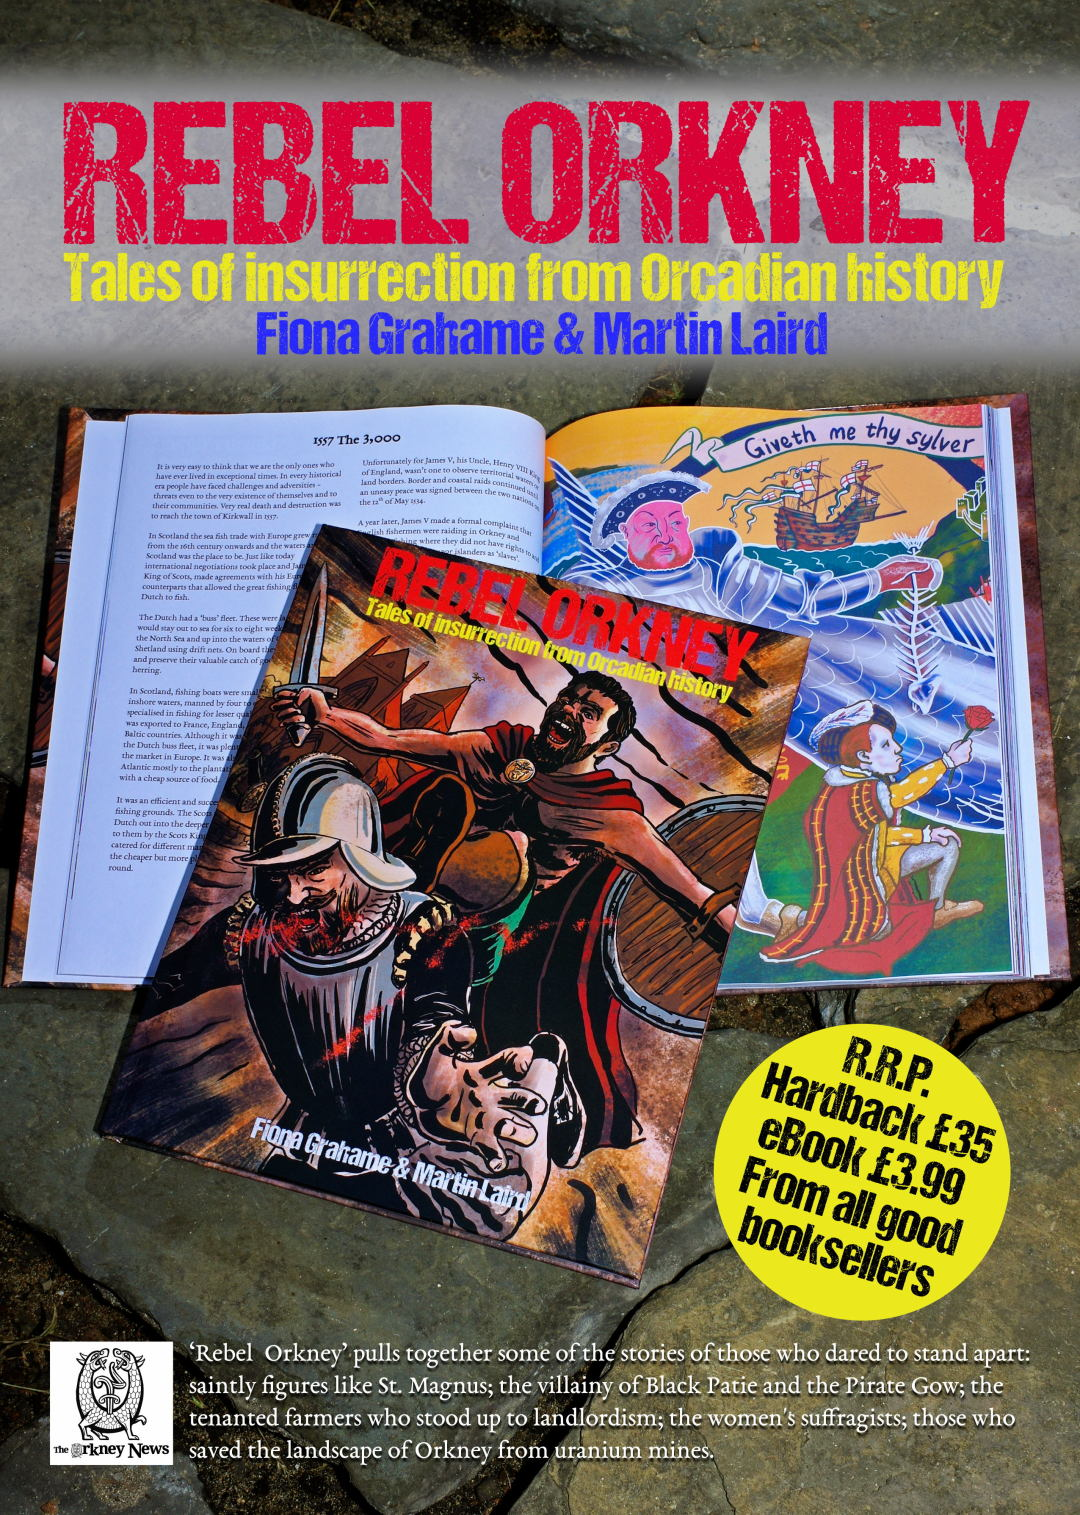 Rebel Orkney - tales of insurrection from Orcadian history, available from all good booksellers now.